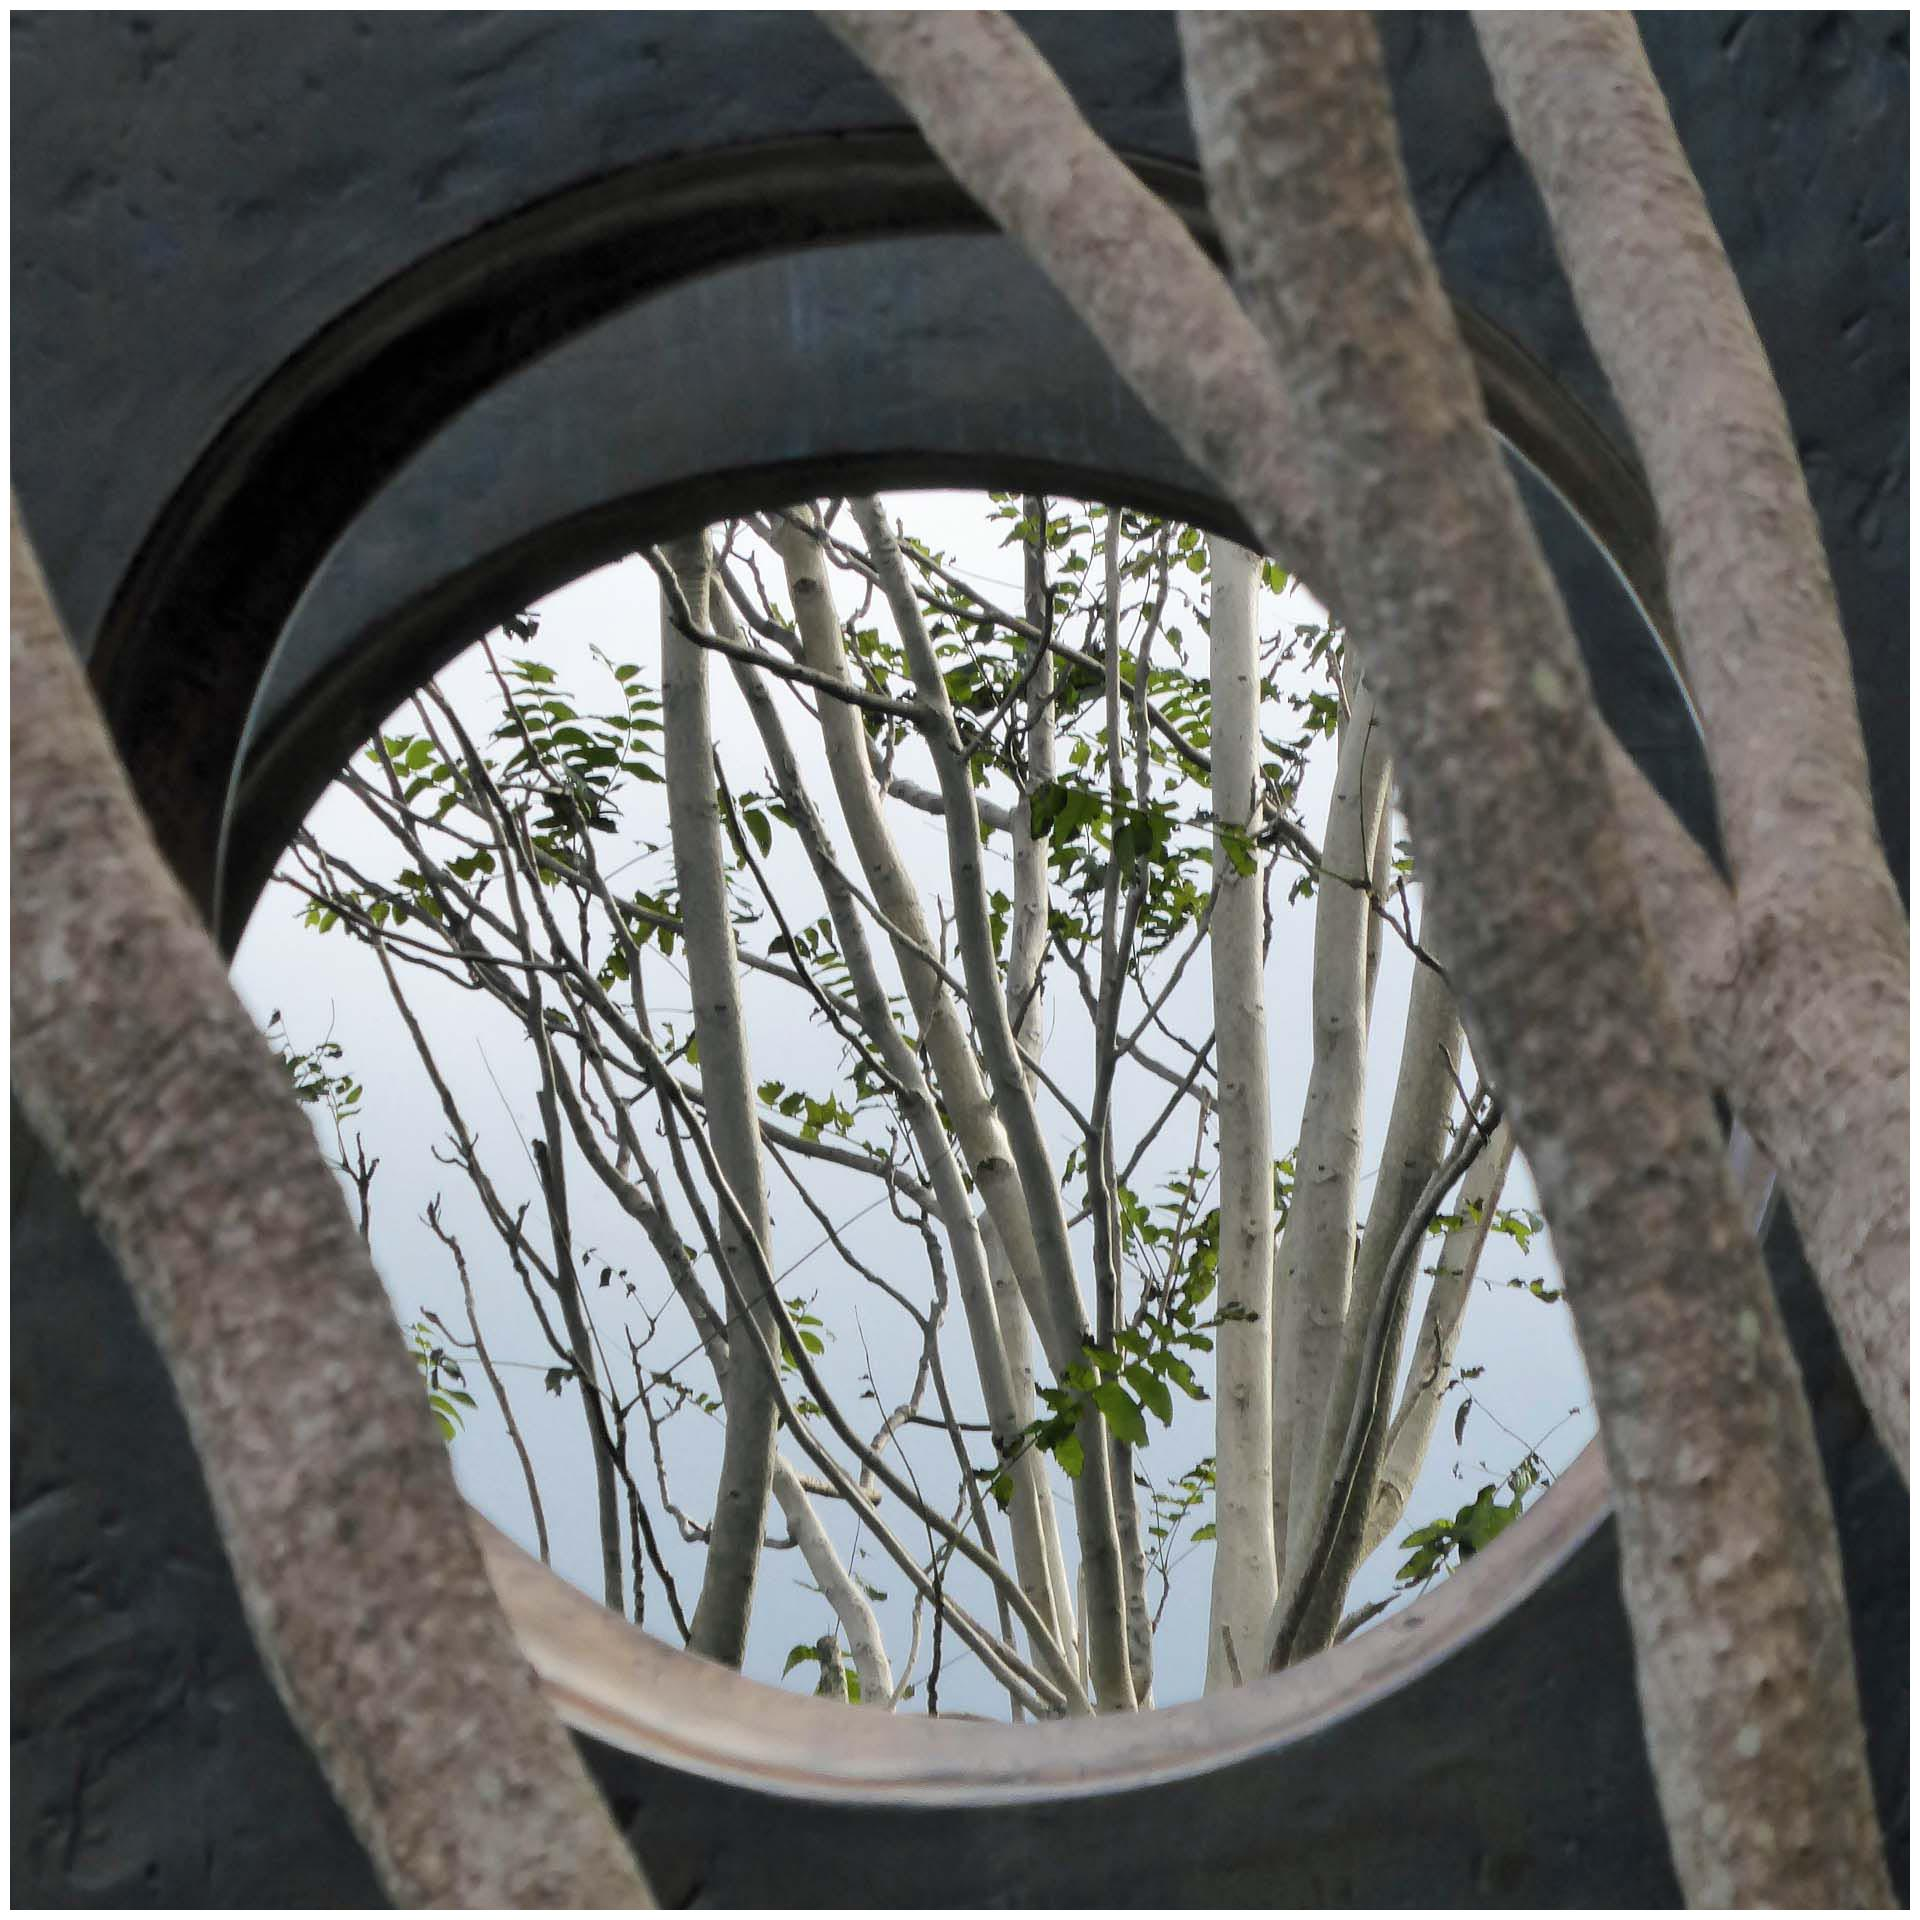 Glimpse of trees through hole in sculpture